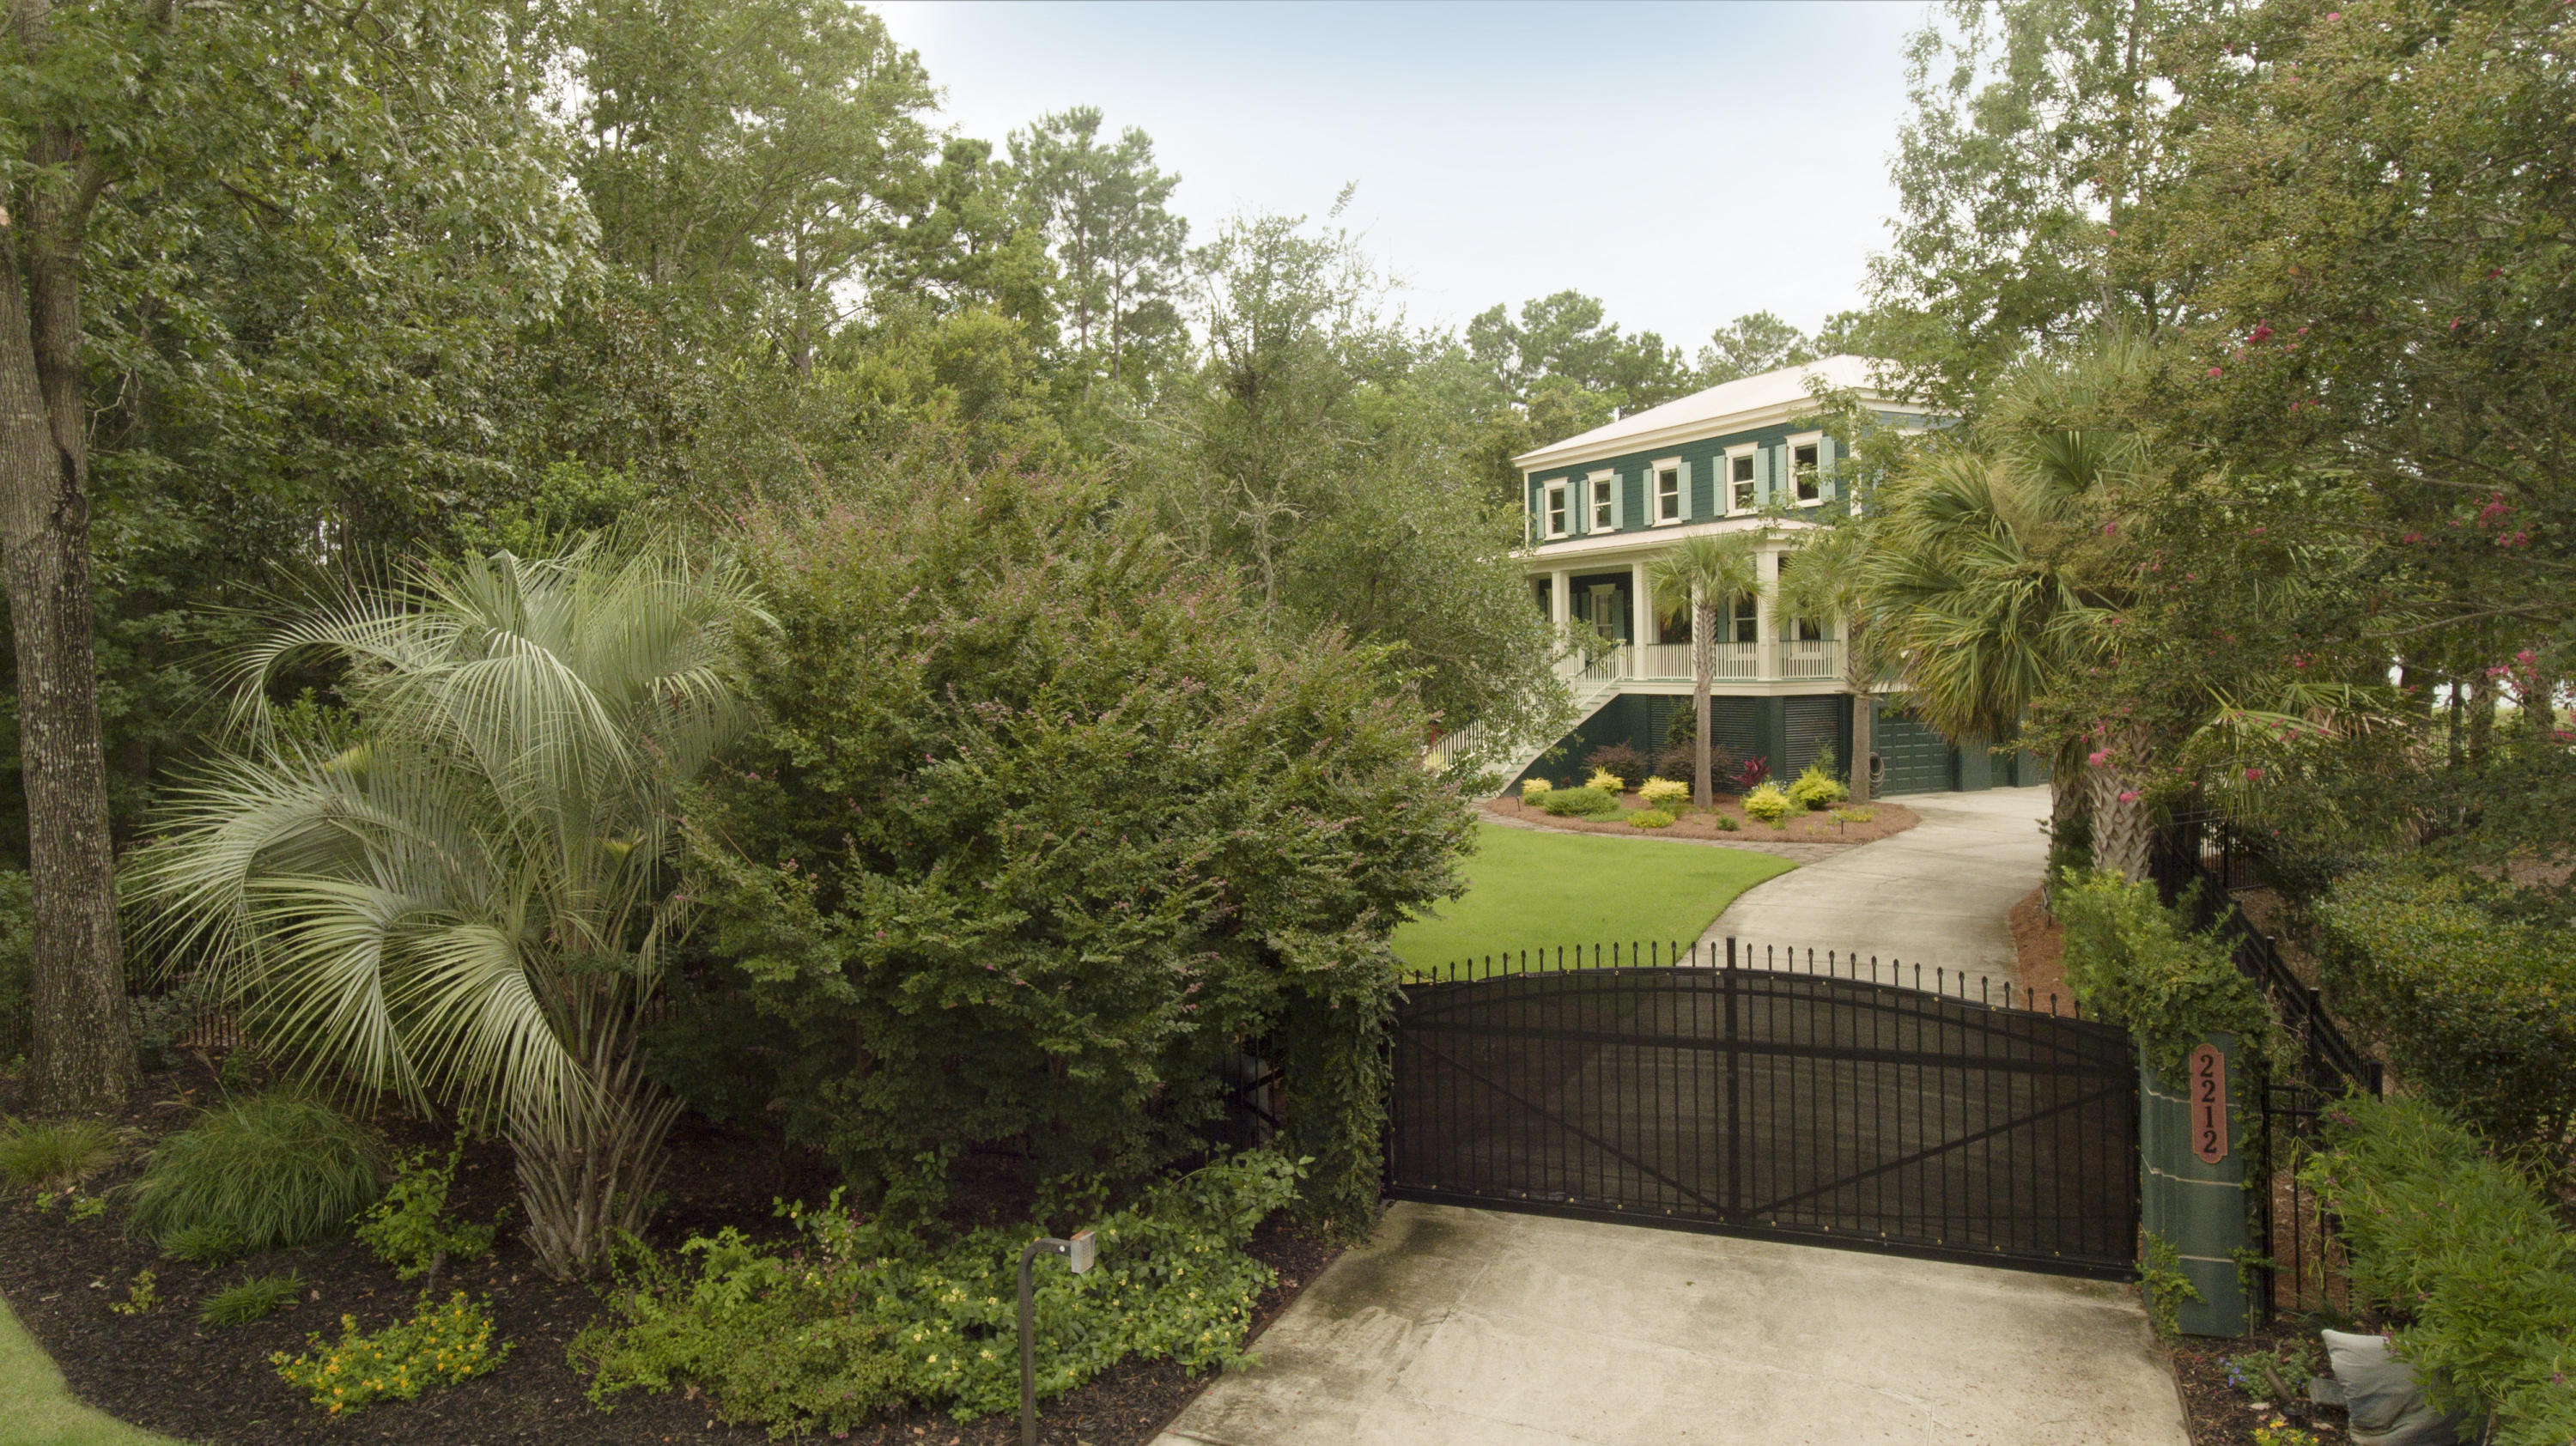 Rivertowne On The Wando Homes For Sale - 2212 Hartfords Bluff, Mount Pleasant, SC - 56